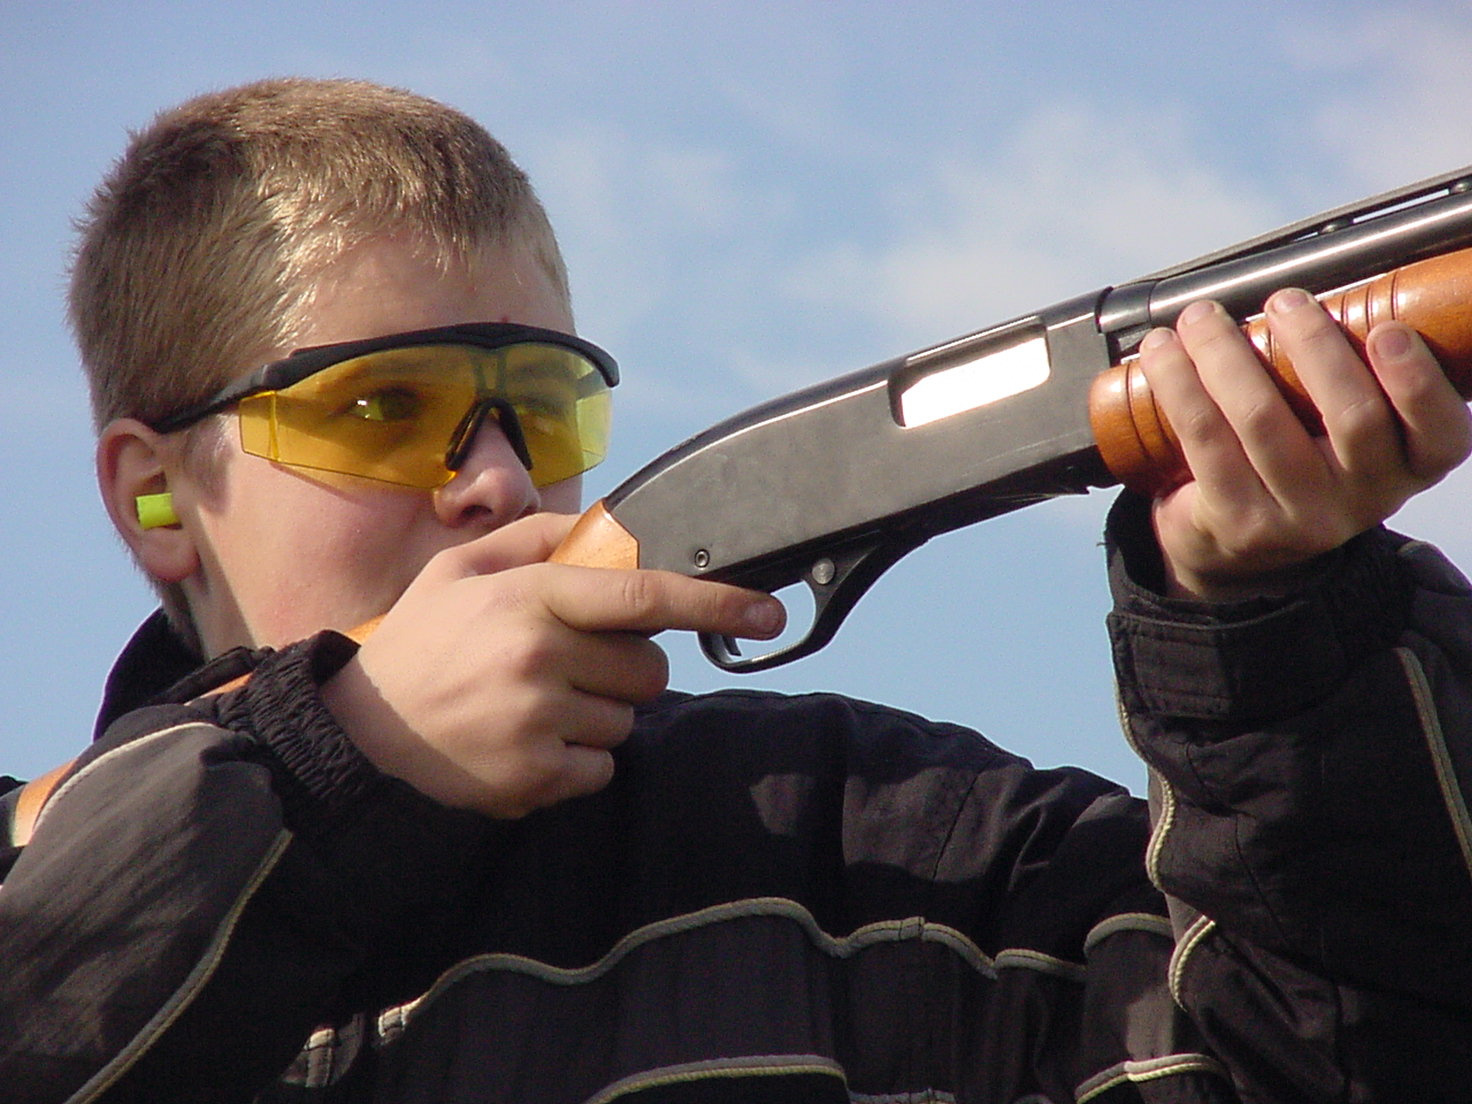 kid_and_shotgun_closeup